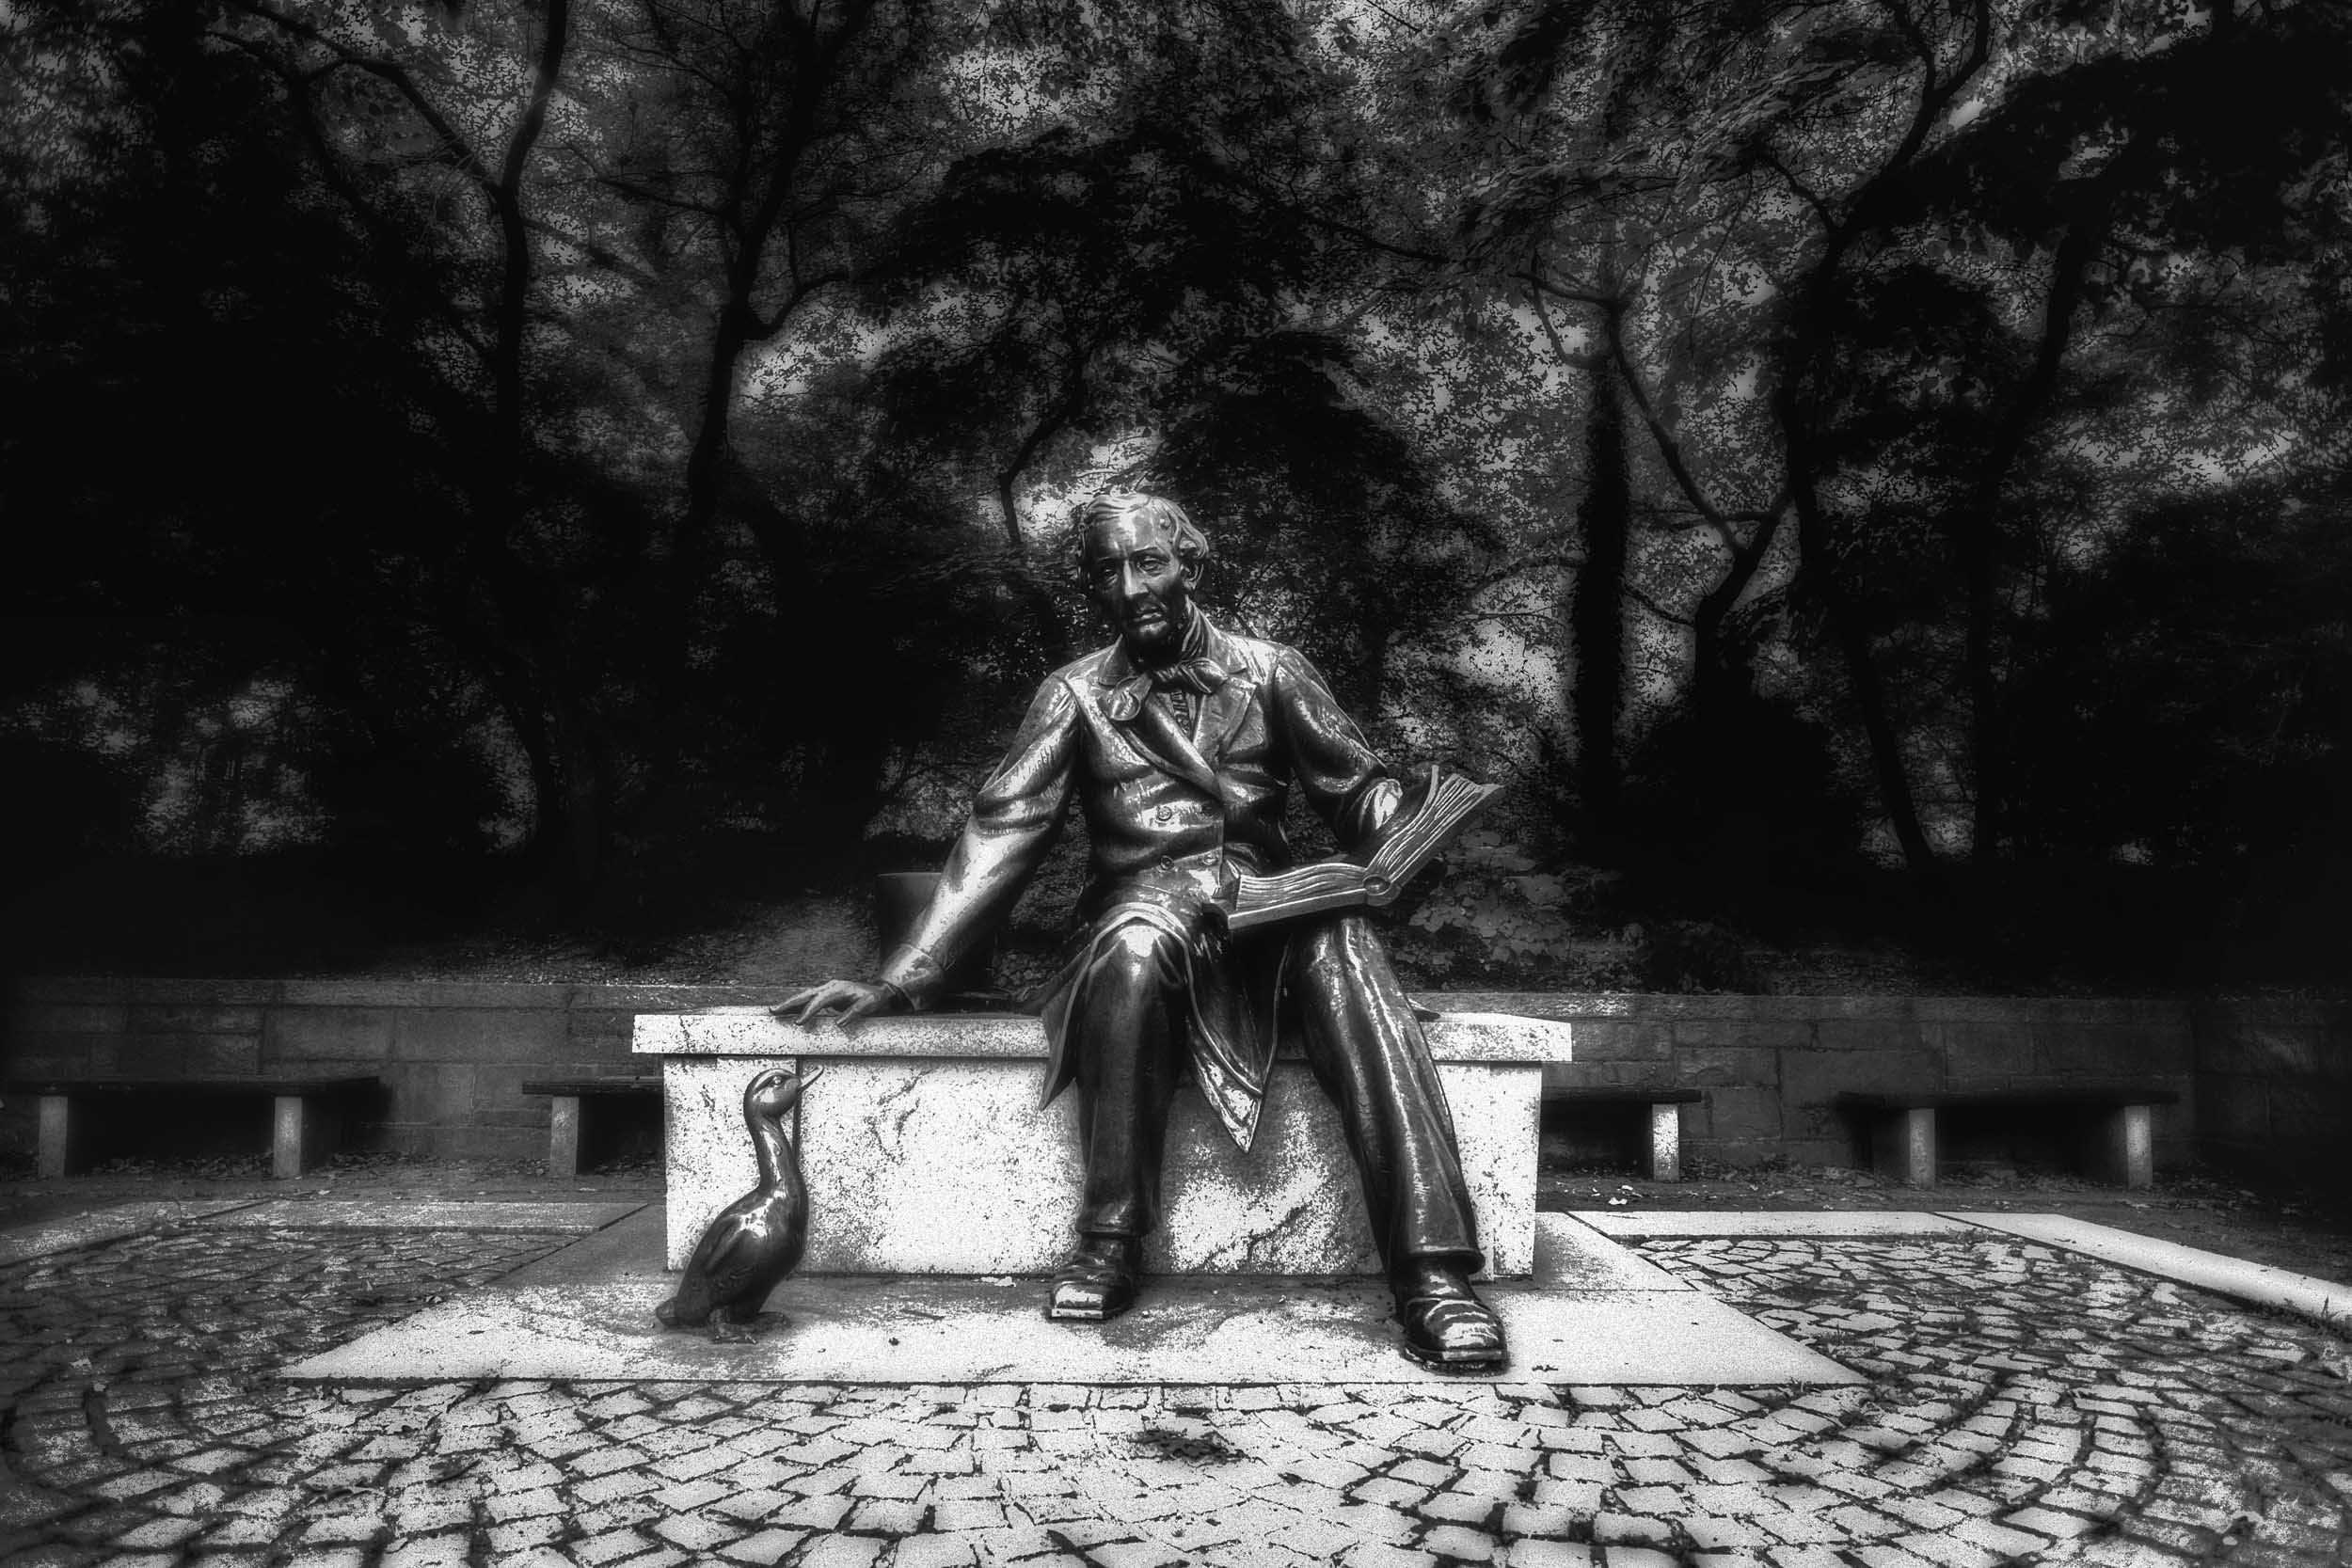 Hans Christian Andersen, Central Park, NYC